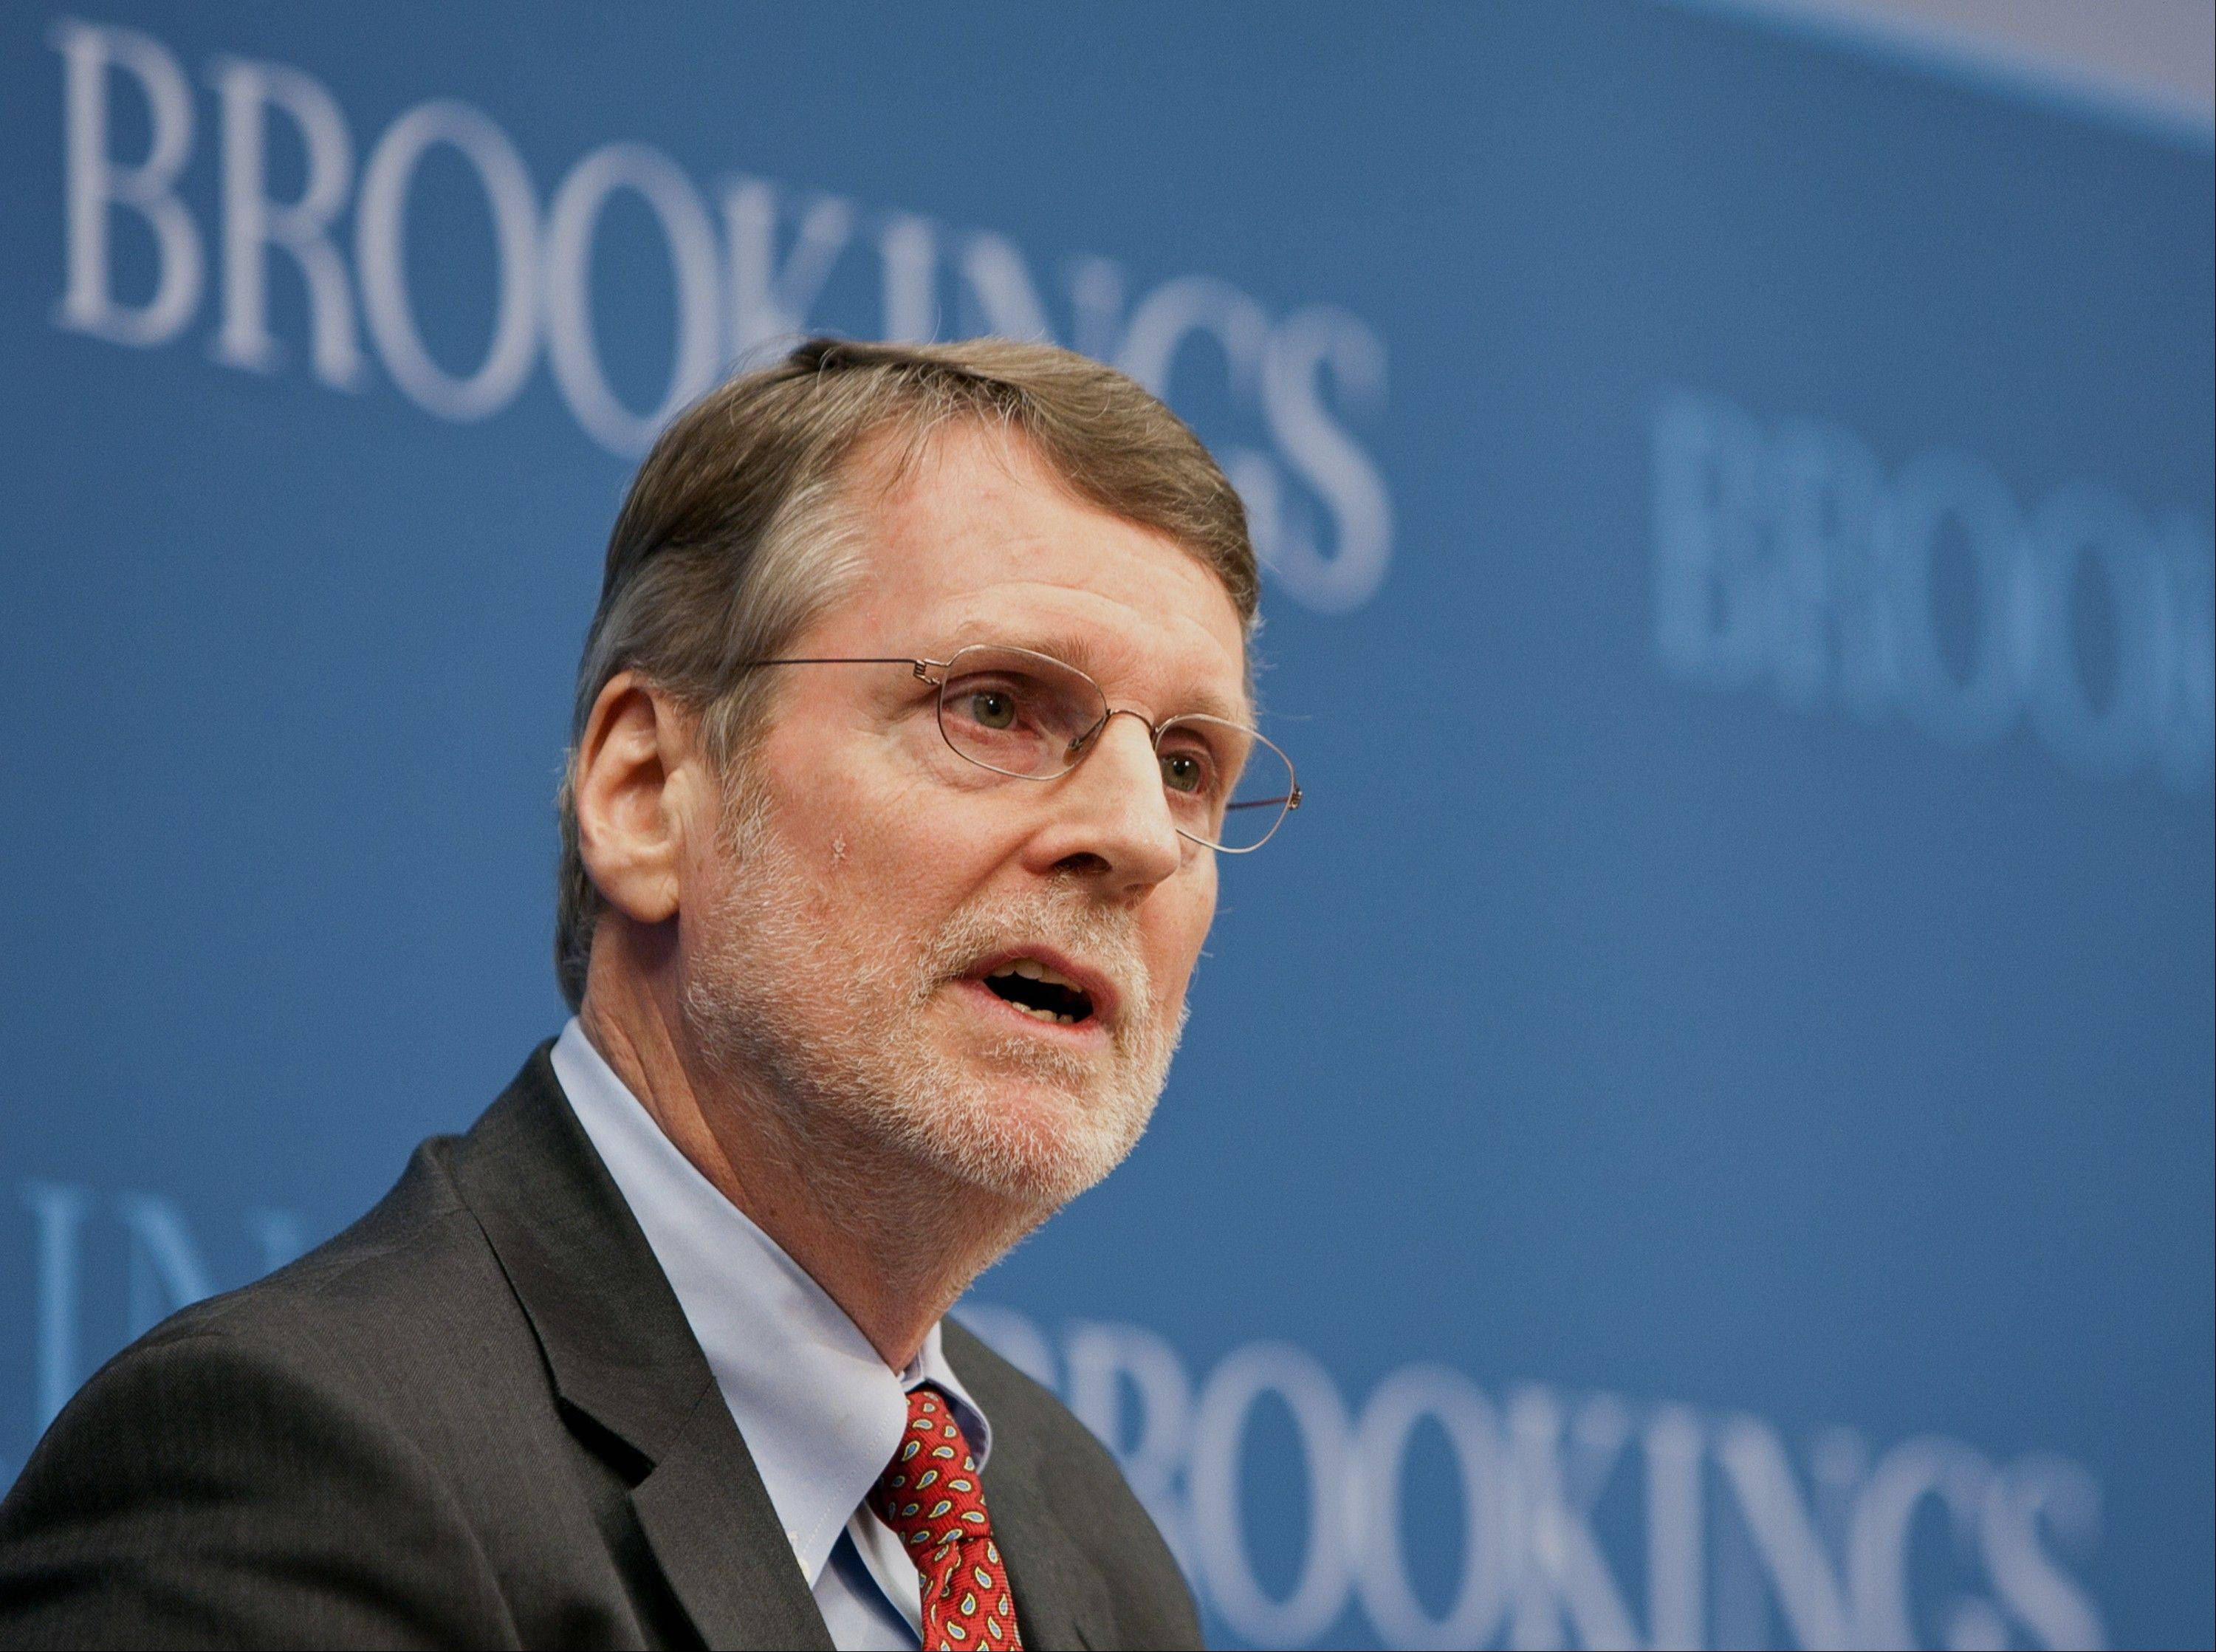 This handout photo provided by the Brookings Institution, taken Jan. 13, shows Gary Burtless of the Brookings Institution speaking in Washington. New research shows Obama�s health care law will significantly boost the economic fortunes of people in the bottom fifth of the income ladder.